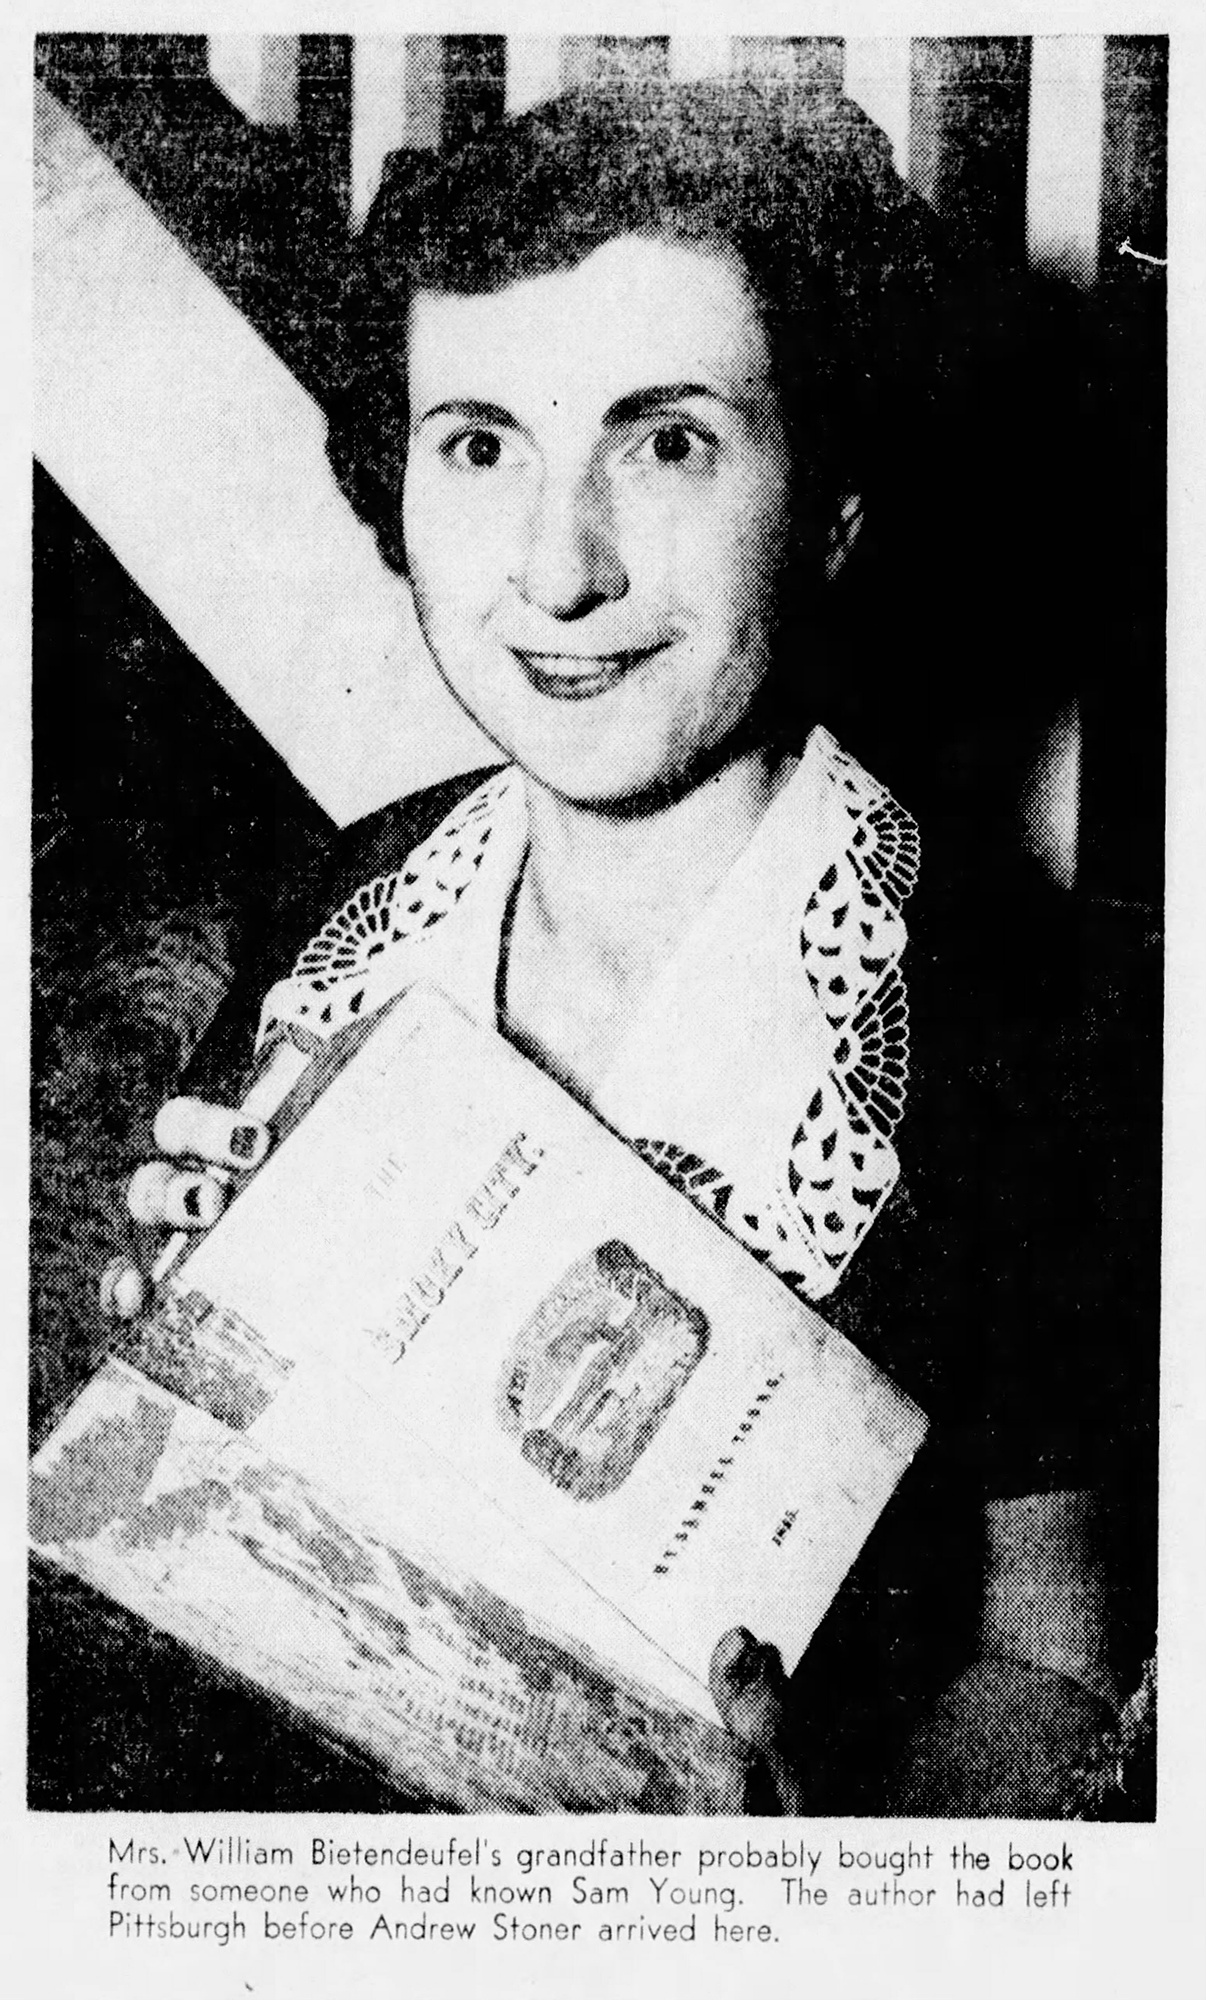 Press photo showing Mrs. William Bietendeufel's discovery of a copy of The Smoky City in the attic of her Mt. Washington home, 1954. Pittsburgh Press, September 19, 1954.